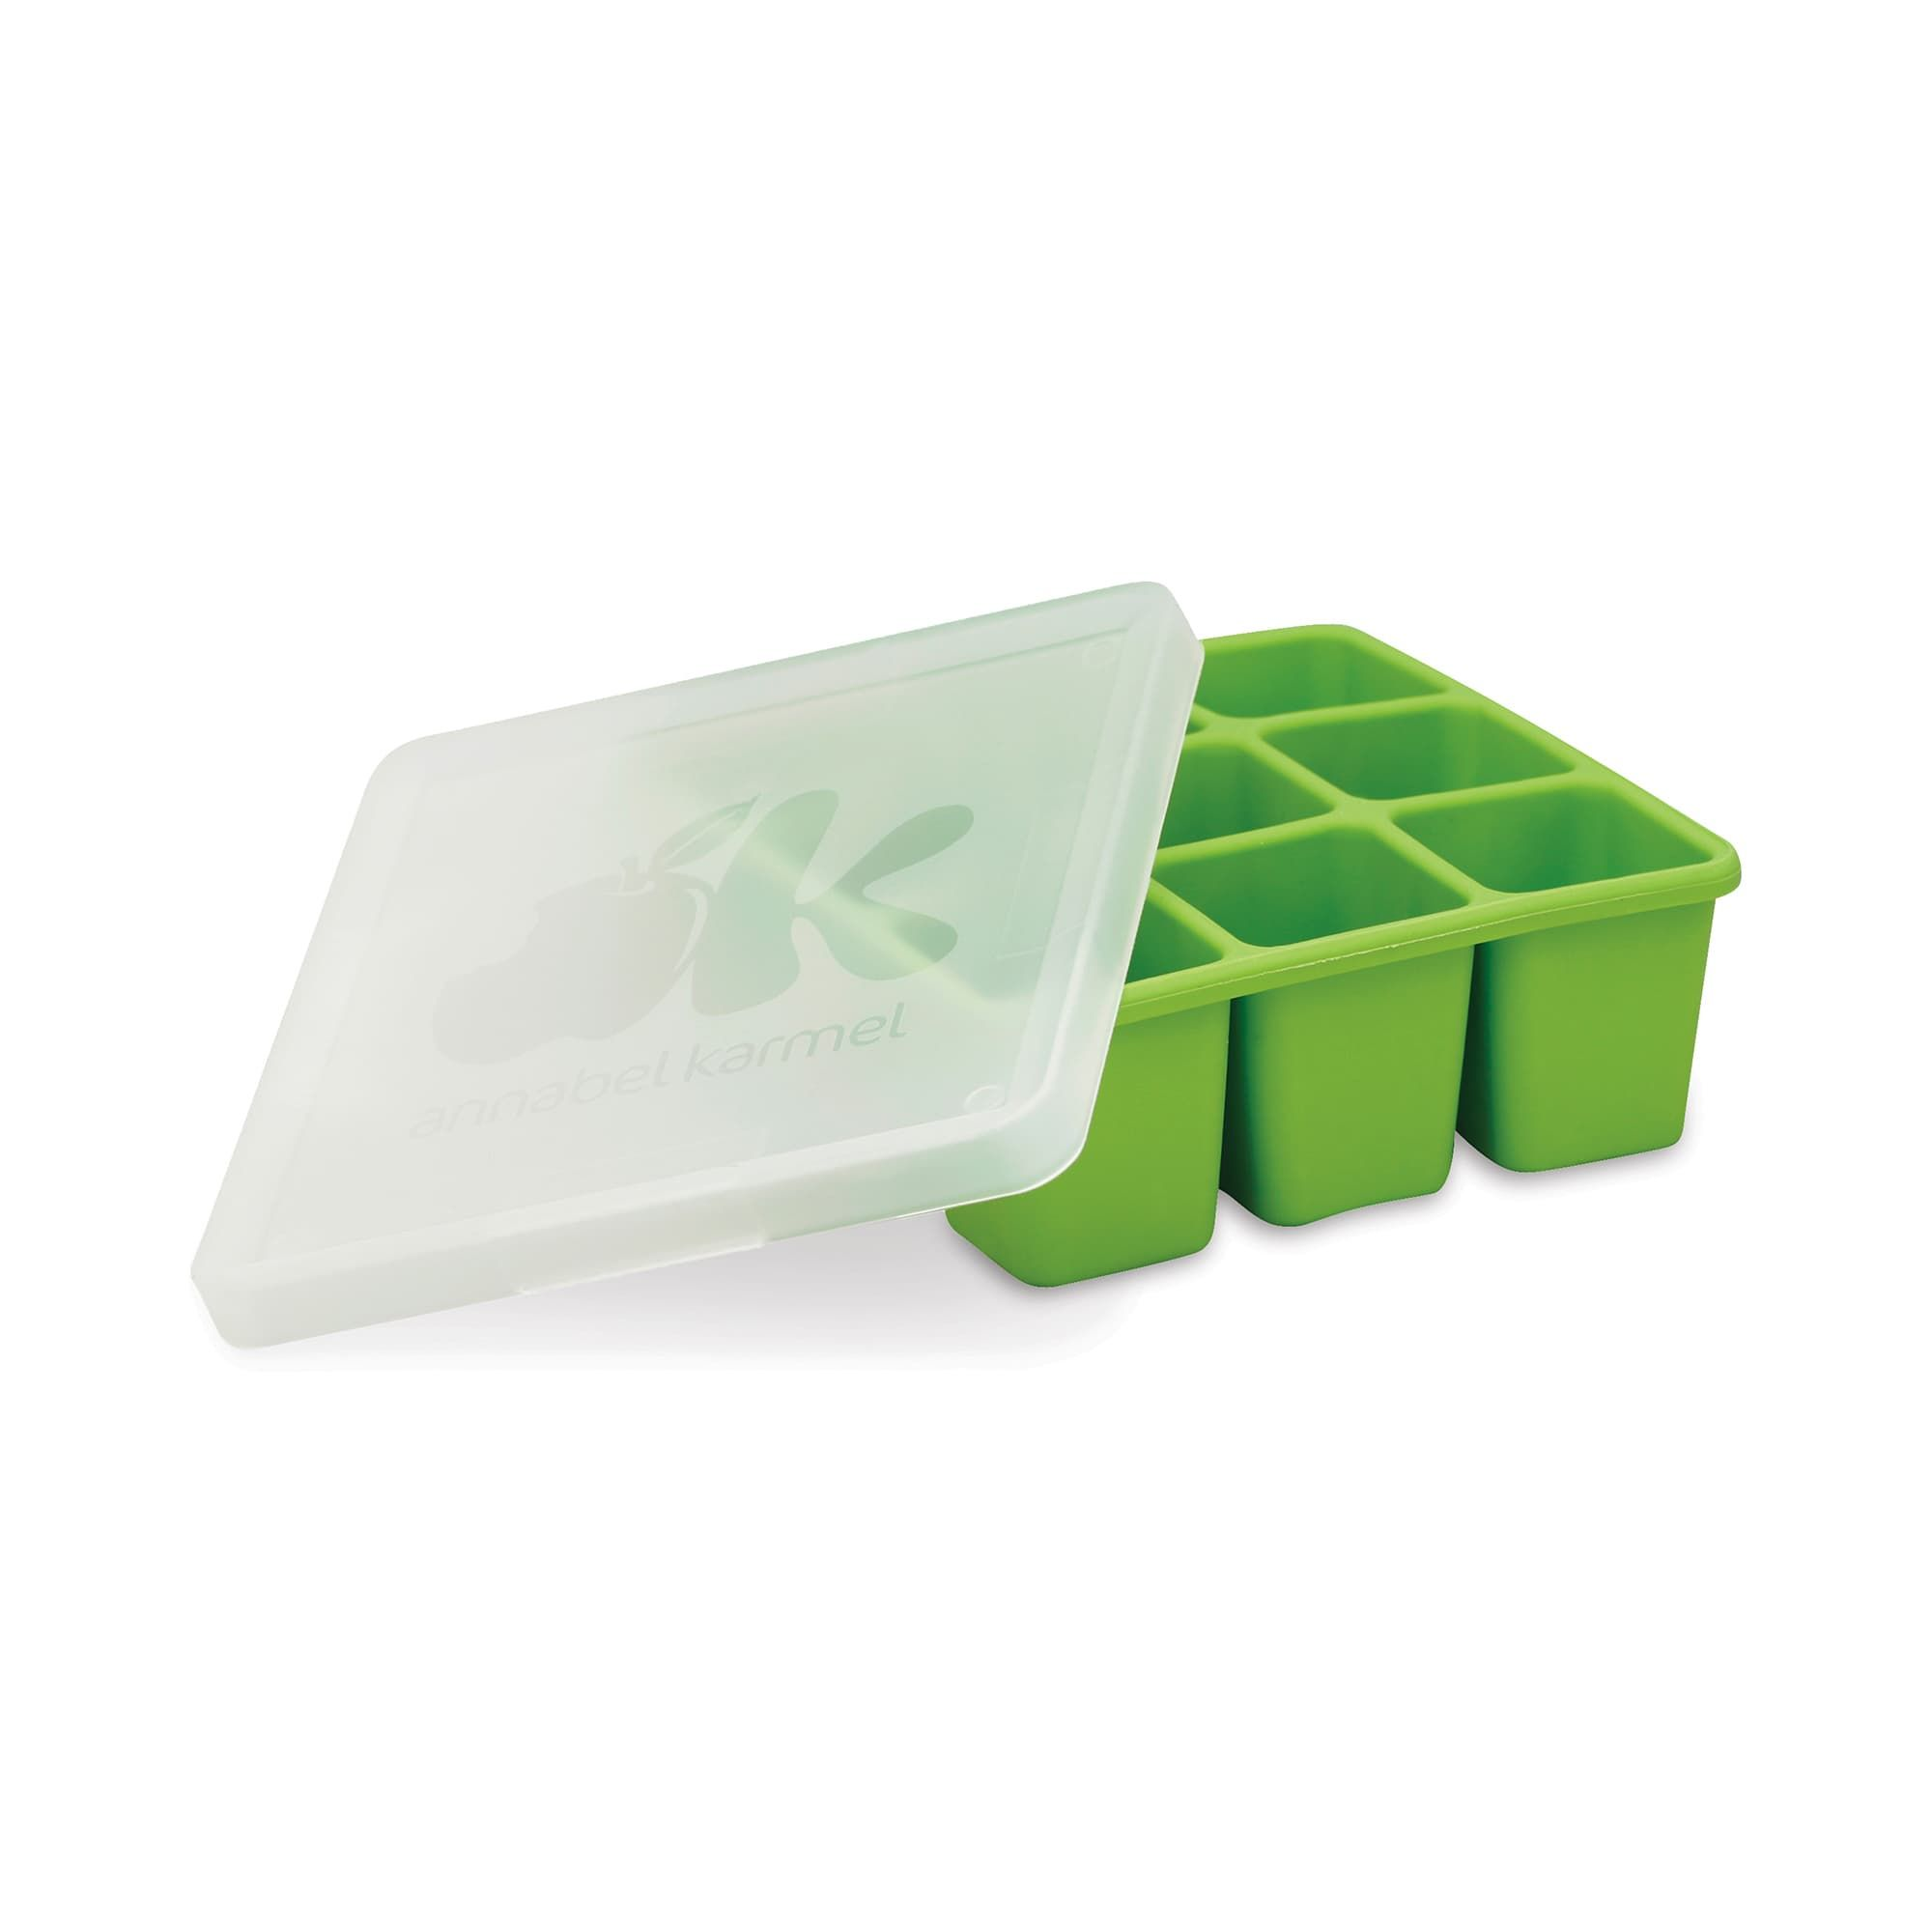 NUK Silicone Baby Food Freezer Tray, Green